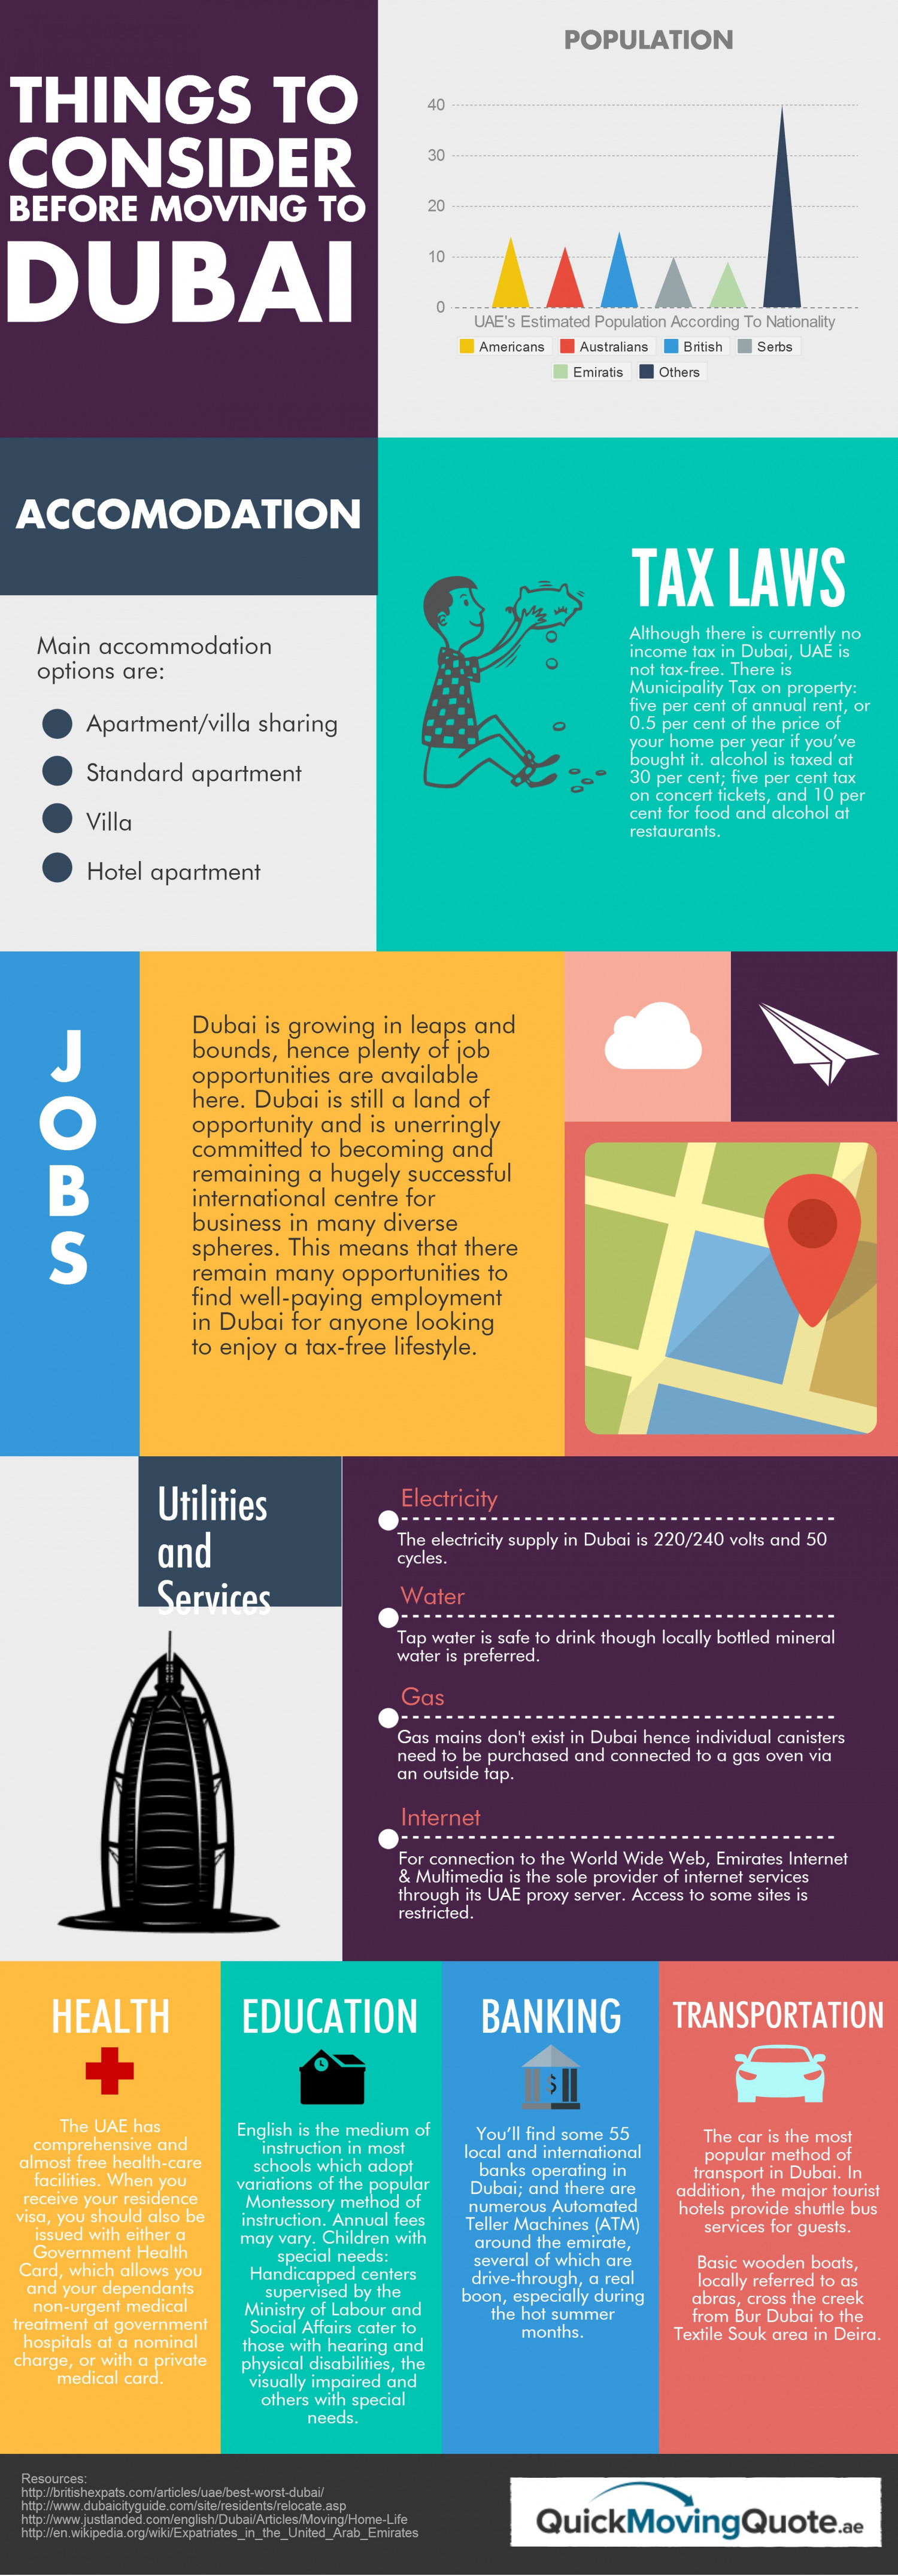 Things To Consider Before Moving To Dubai Infographic